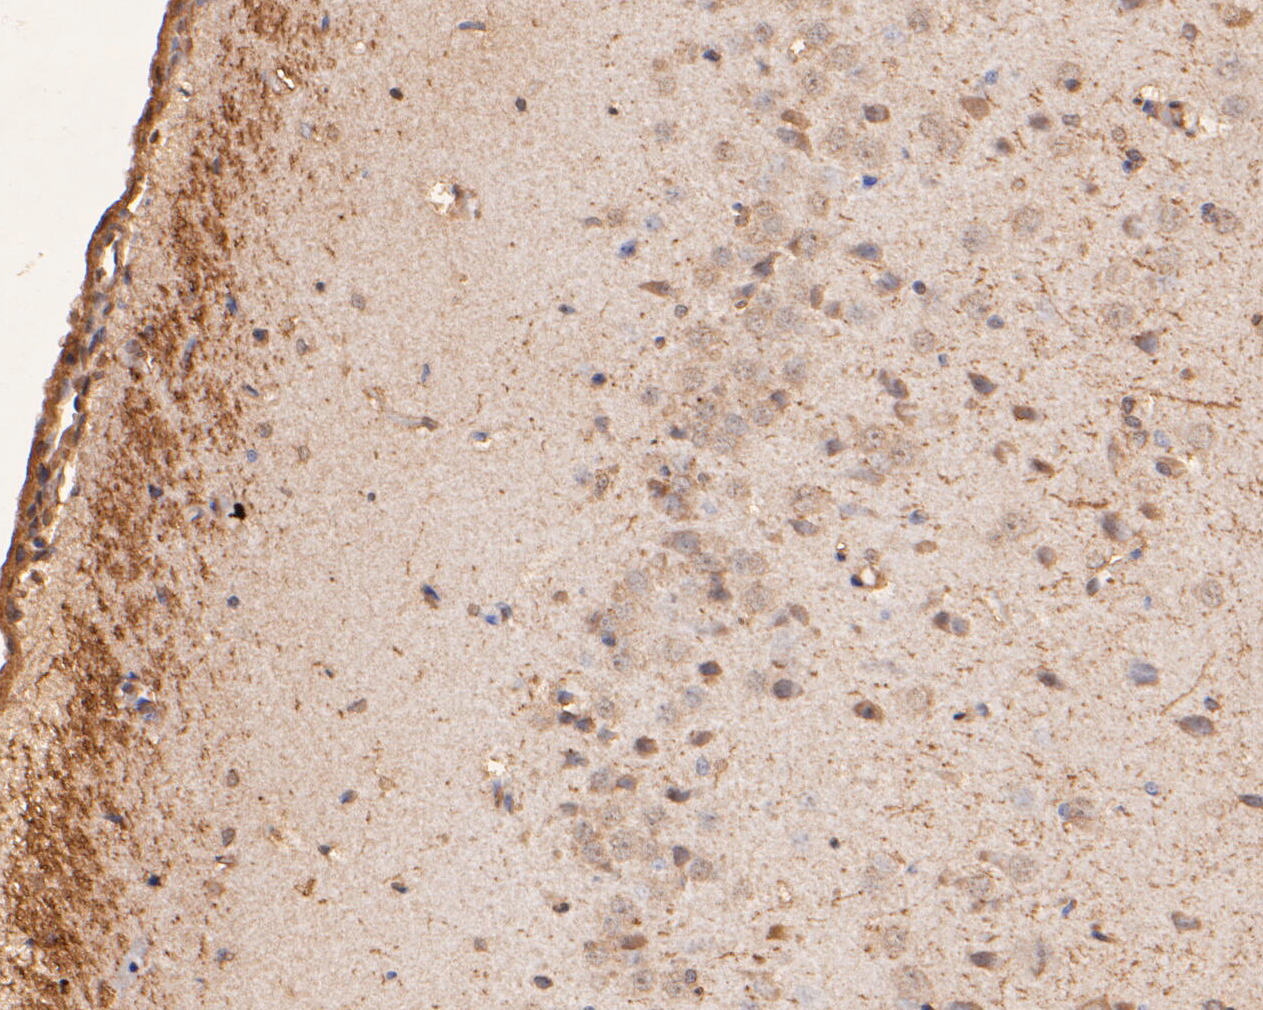 Immunohistochemical analysis of paraffin-embedded rat brain tissue using anti-GABRA4 antibody. The section was pre-treated using heat mediated antigen retrieval with Tris-EDTA buffer (pH 8.0-8.4) for 20 minutes.The tissues were blocked in 5% BSA for 30 minutes at room temperature, washed with ddH2O and PBS, and then probed with the primary antibody (ER1901-60, 1/50) for 30 minutes at room temperature. The detection was performed using an HRP conjugated compact polymer system. DAB was used as the chromogen. Tissues were counterstained with hematoxylin and mounted with DPX.